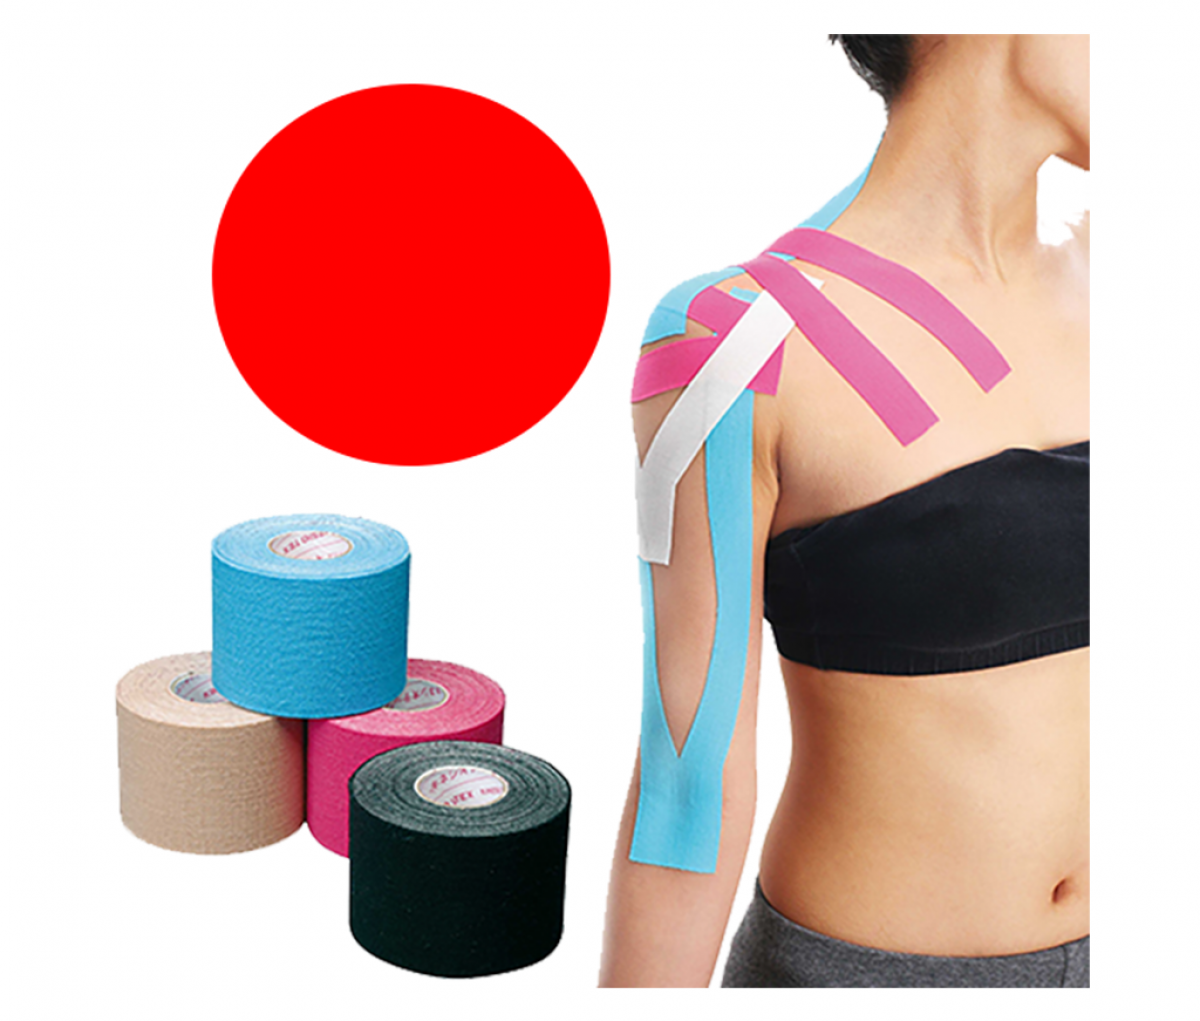 KINESIOLOGY TAPE - 5 CM X 5 M RED 507984